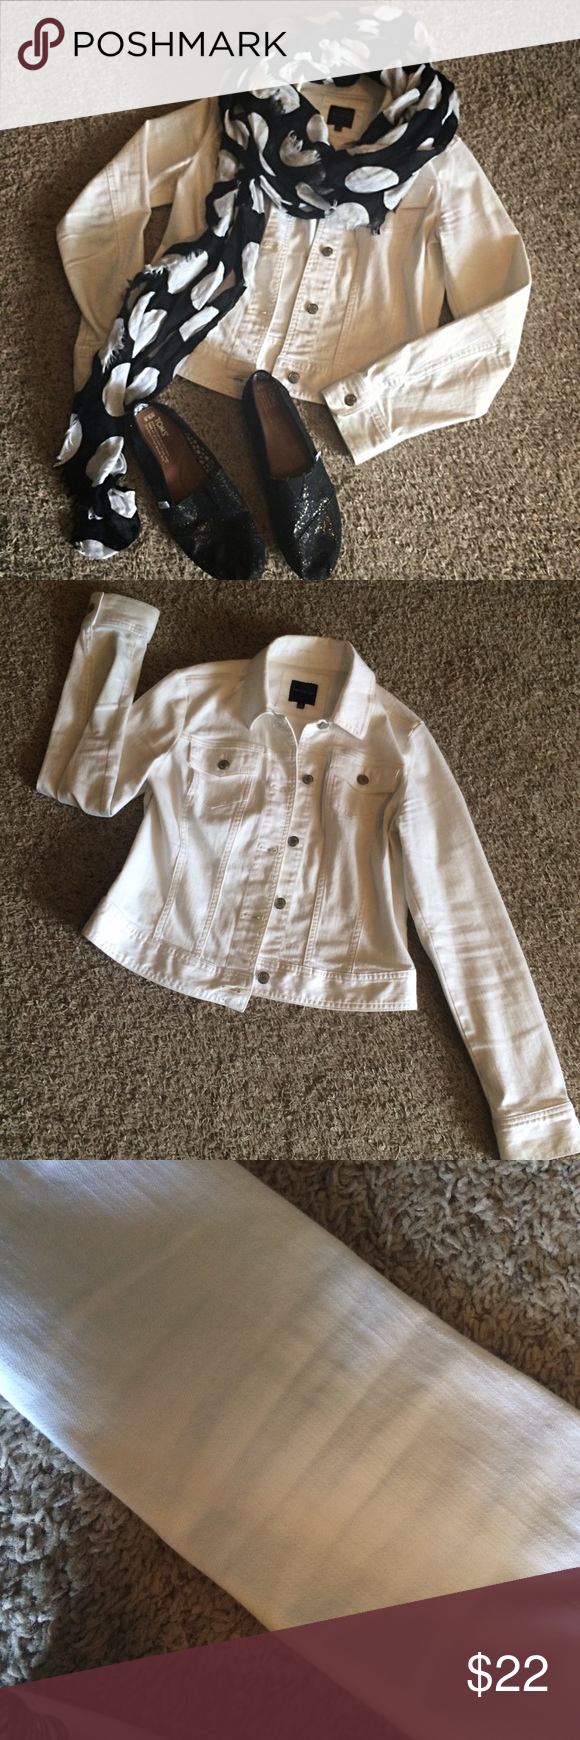 White Jean Jacket The Limited white Jean jacket! Only worn a handful of times. It is in wonderful condition (but has slight discoloration on the sleeves shown in one of the pictures). Snag this adorable jacket for Fall!🍂🎃 The Limited Jackets & Coats Jean Jackets